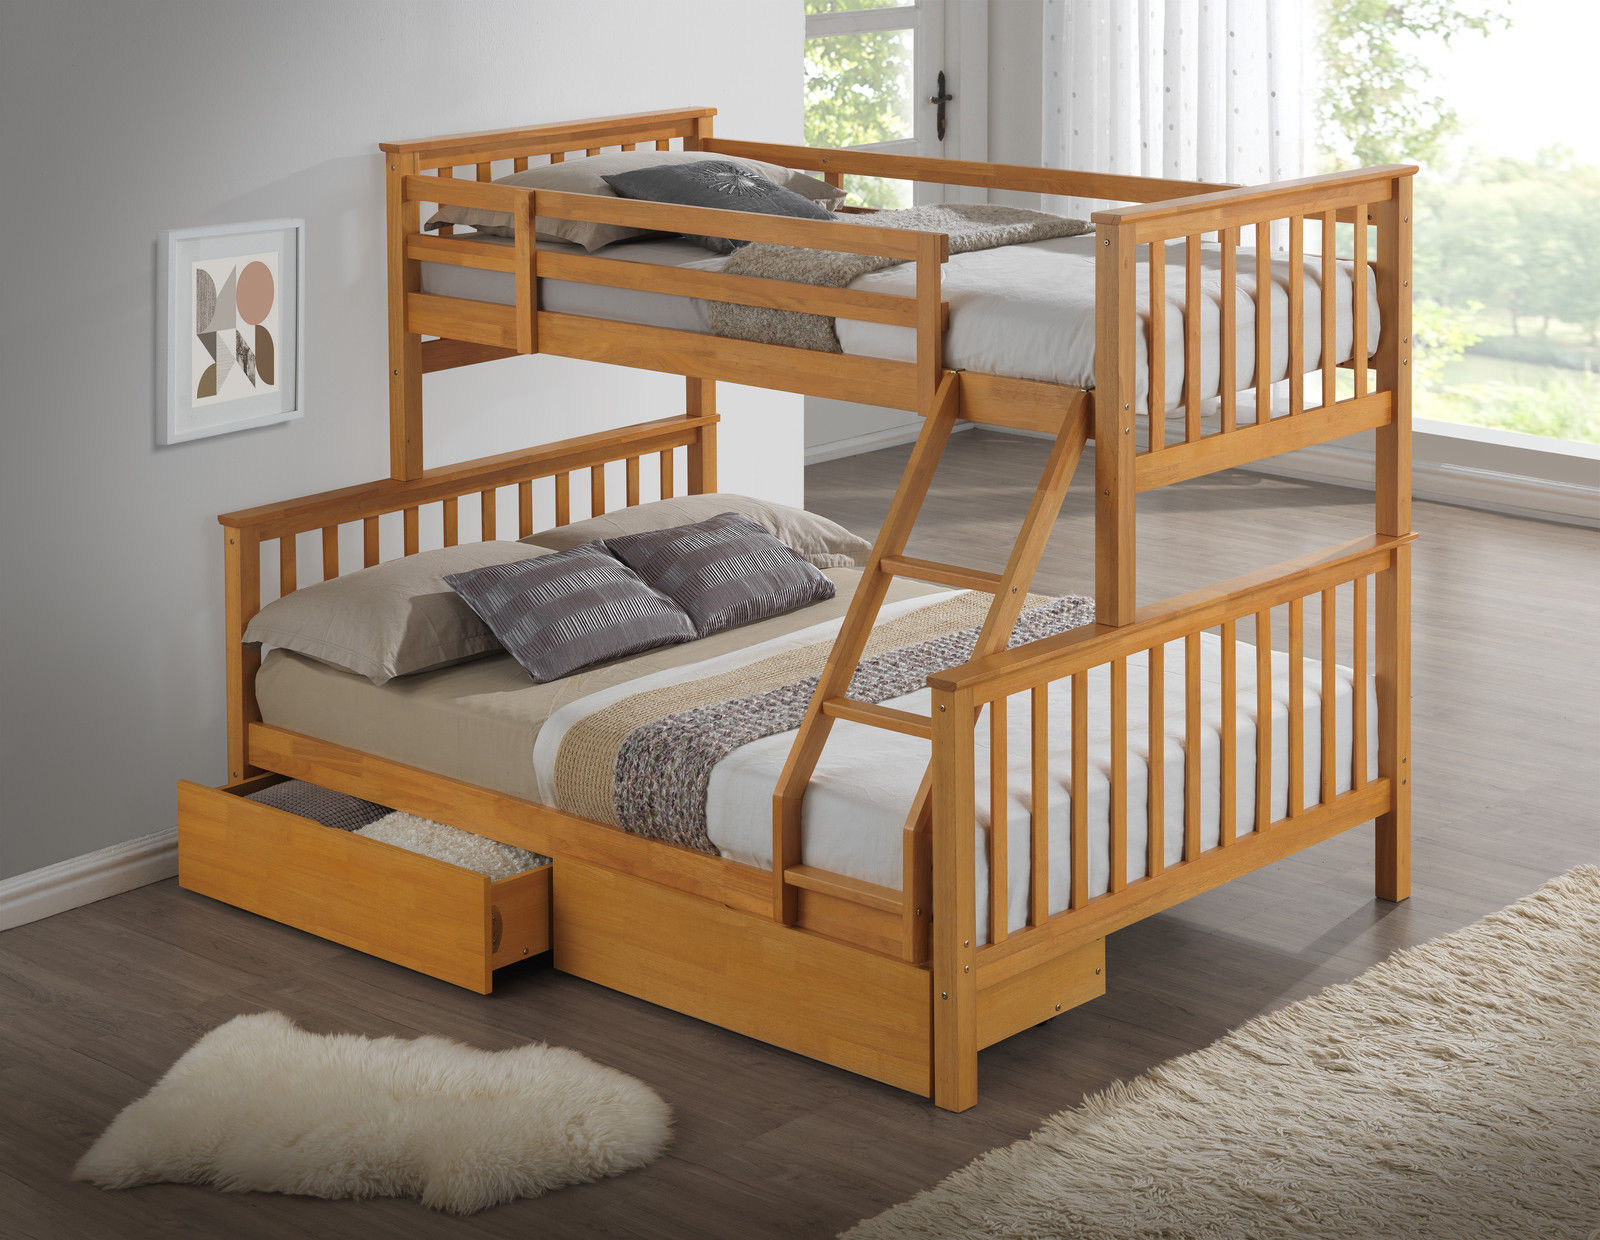 Beech triple wooden bunk bed childrens kids for Wooden bunkbeds